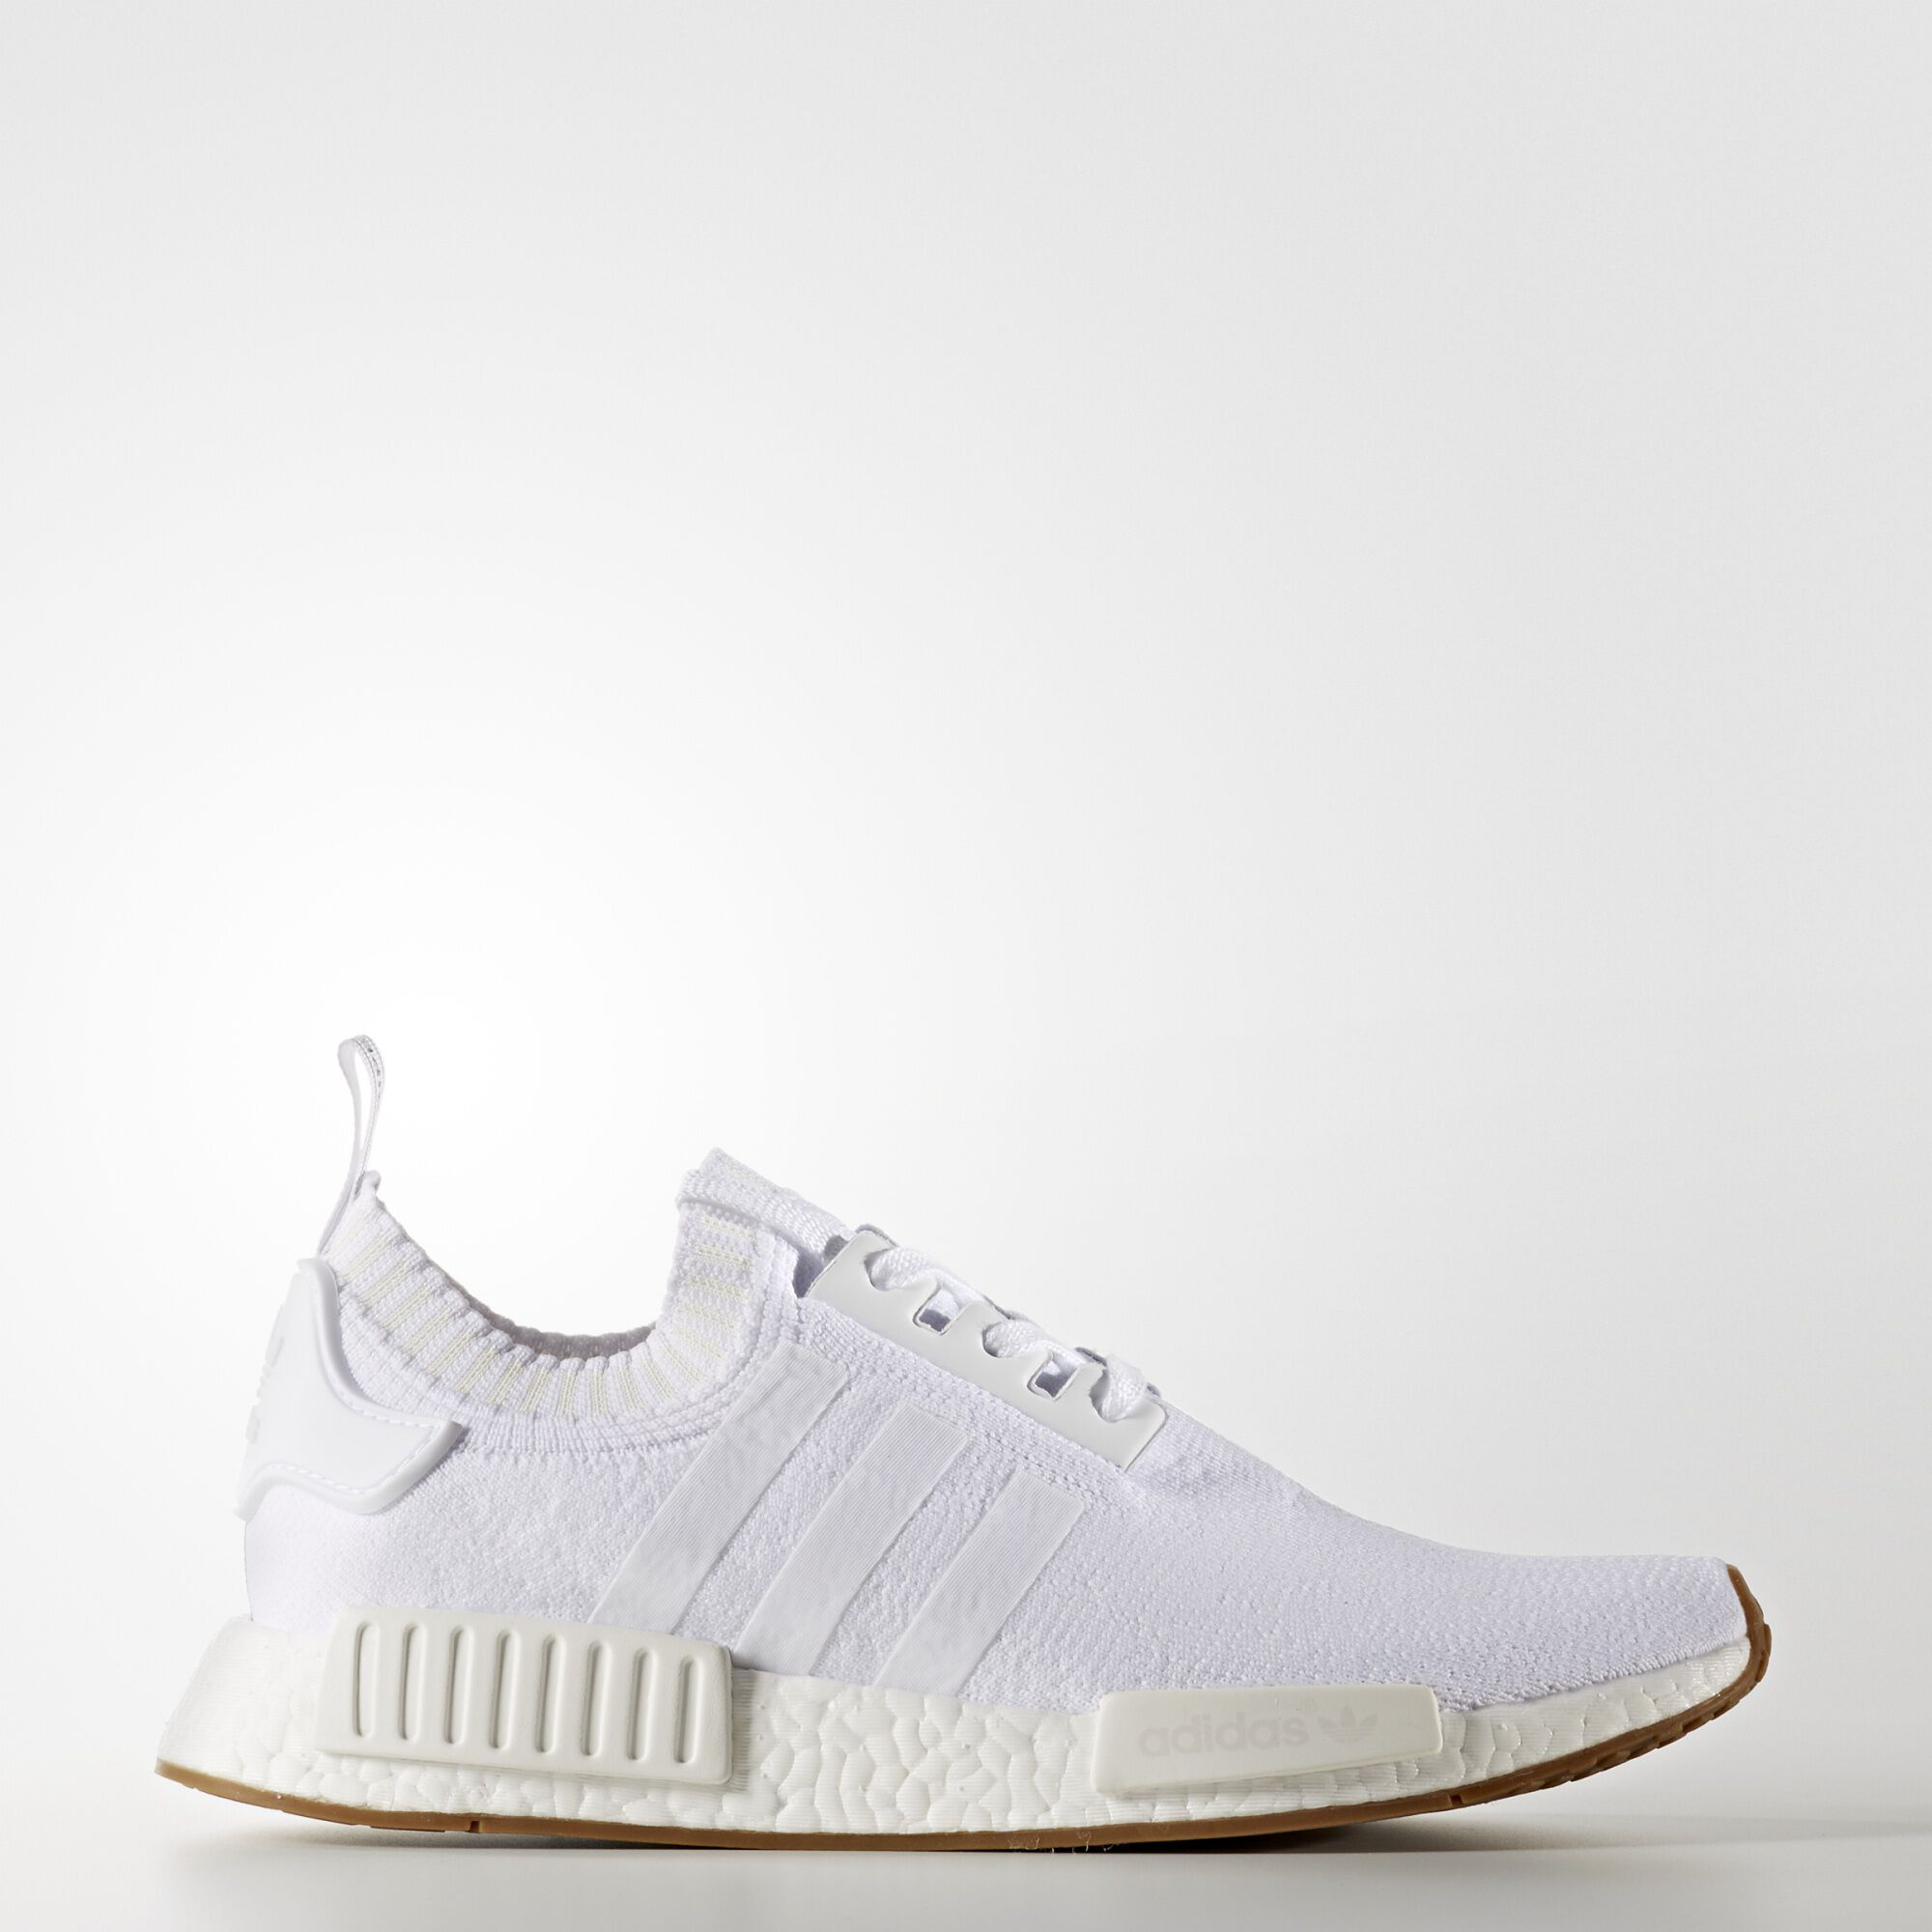 adidas Originals NMD R1 Women's Running Shoes Sun Glow